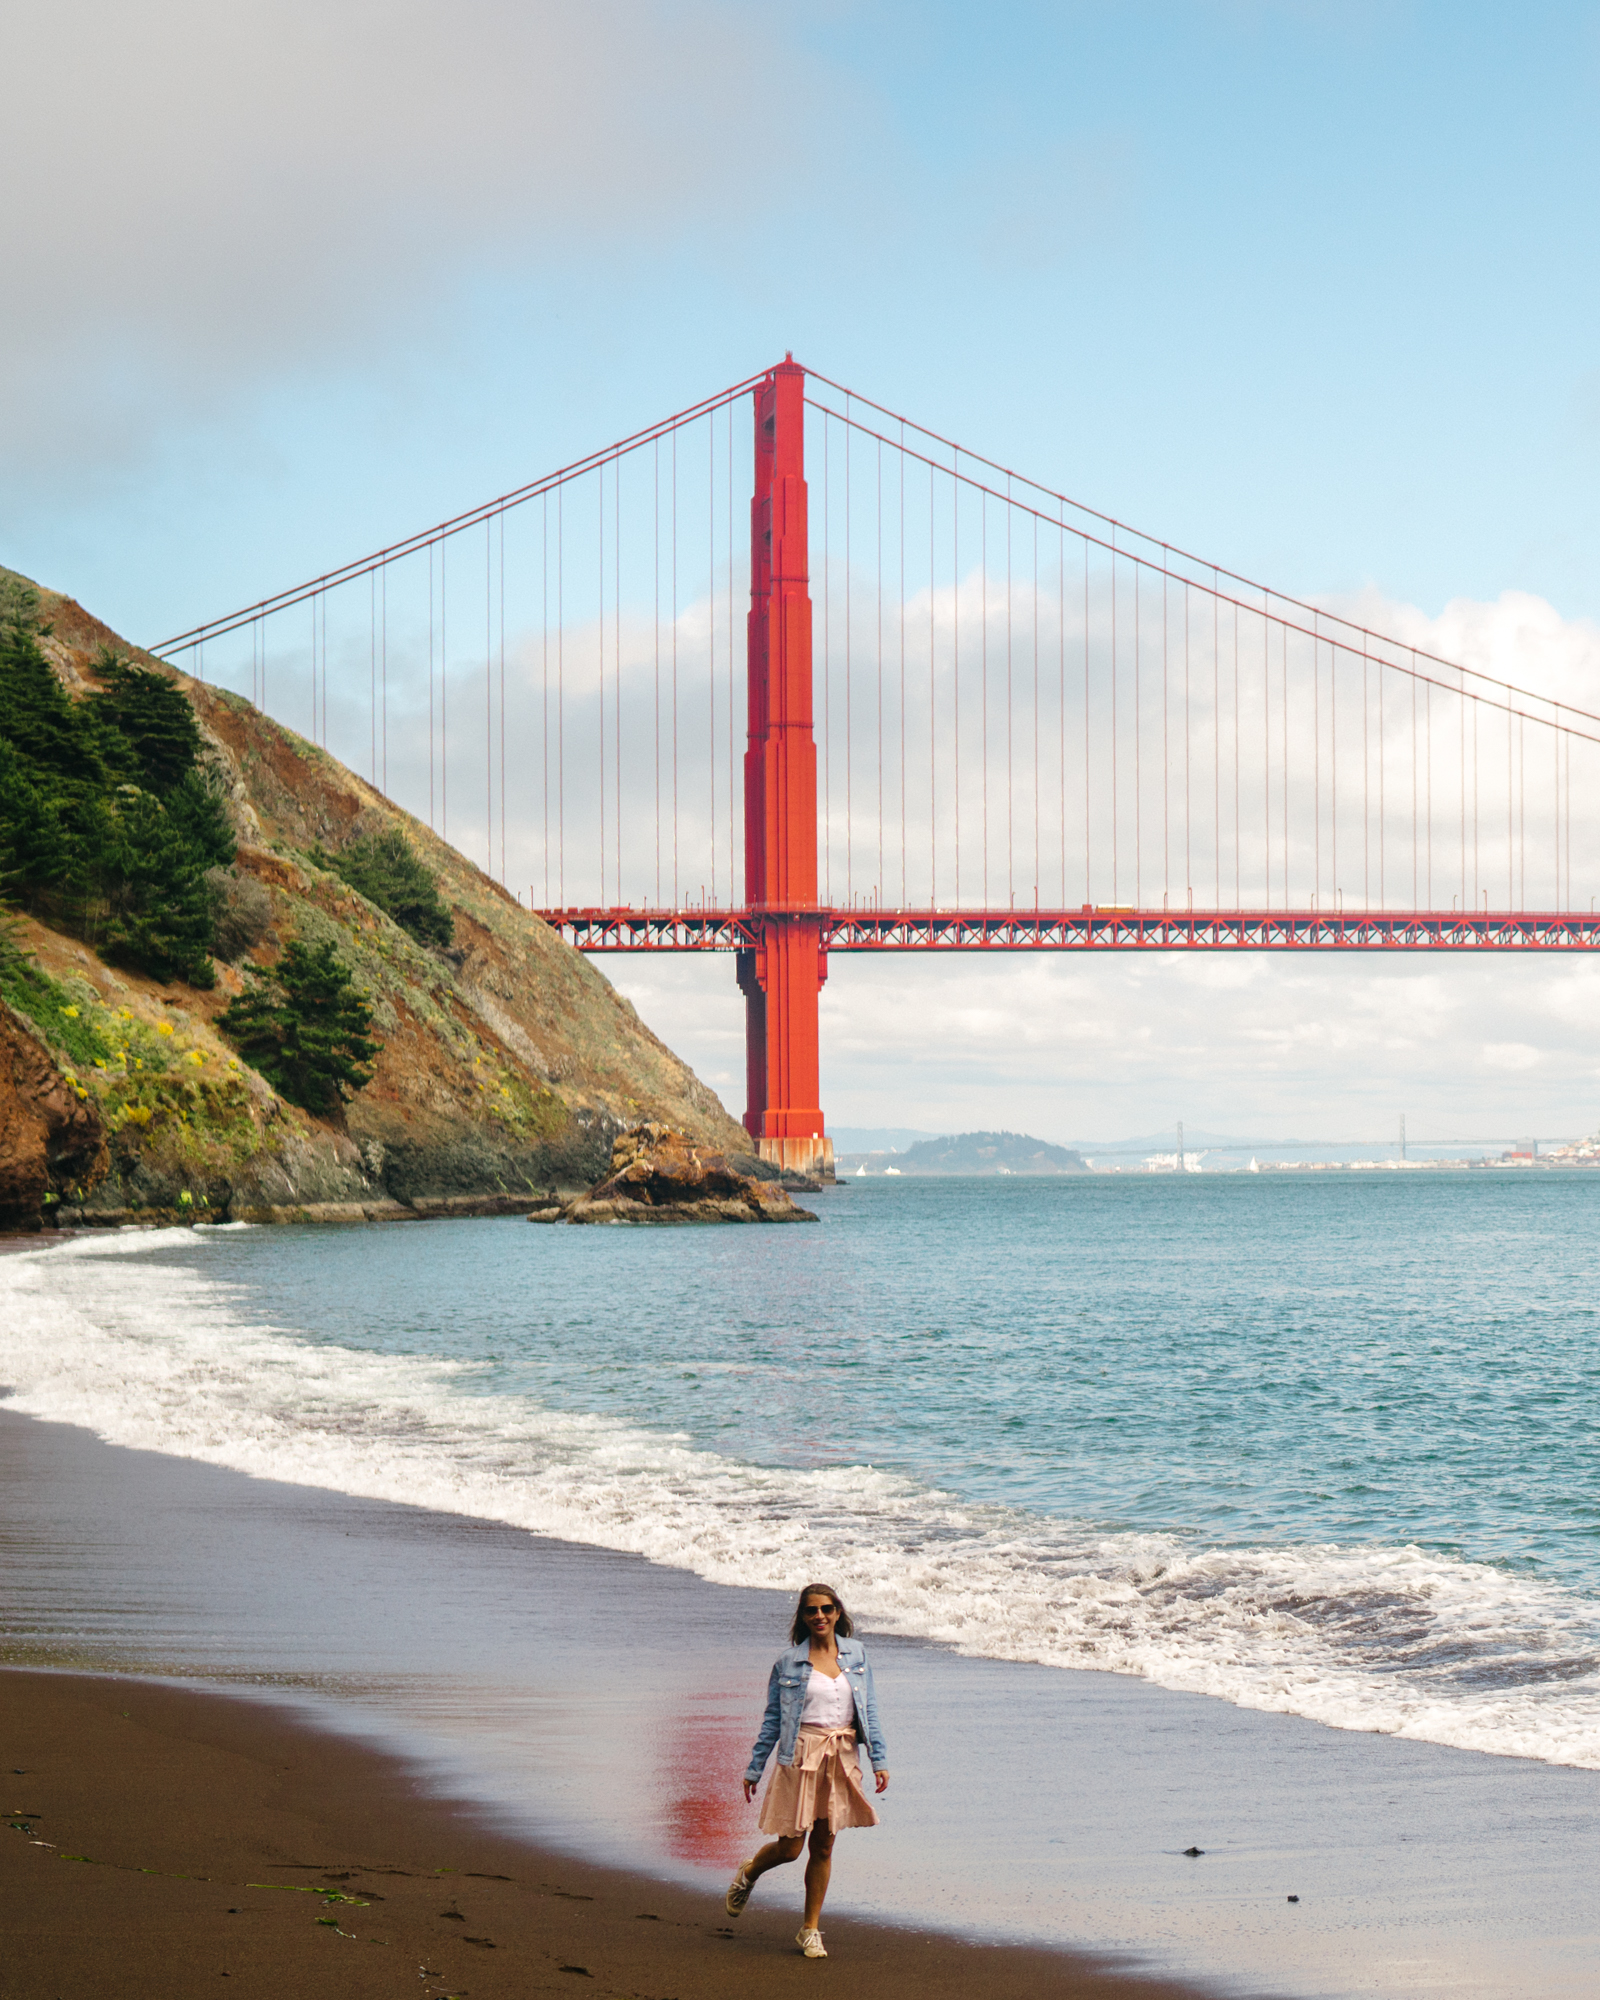 How to find this secret beach in San Francisco